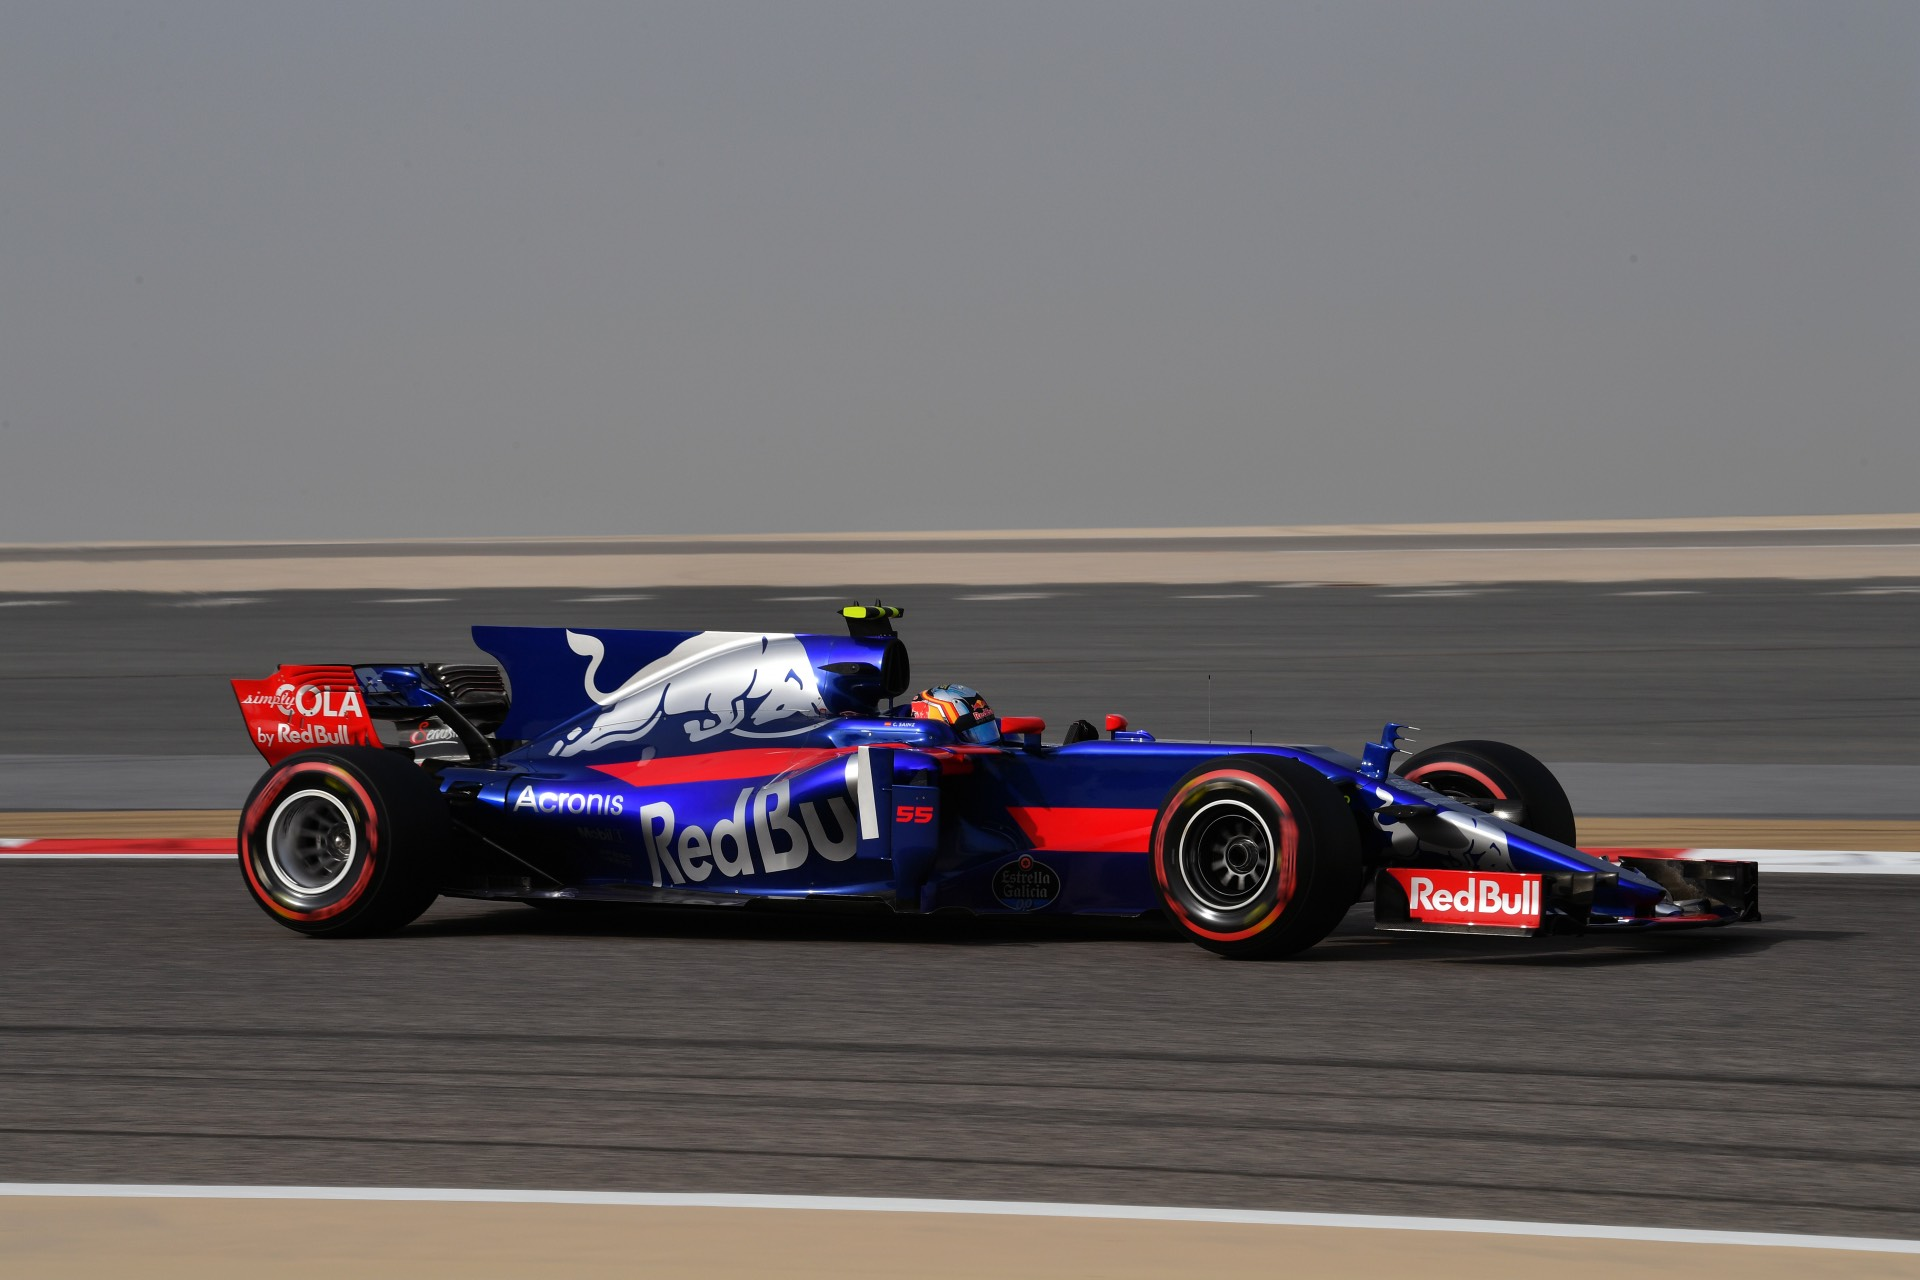 Bahrain Grand Prix Qualifying